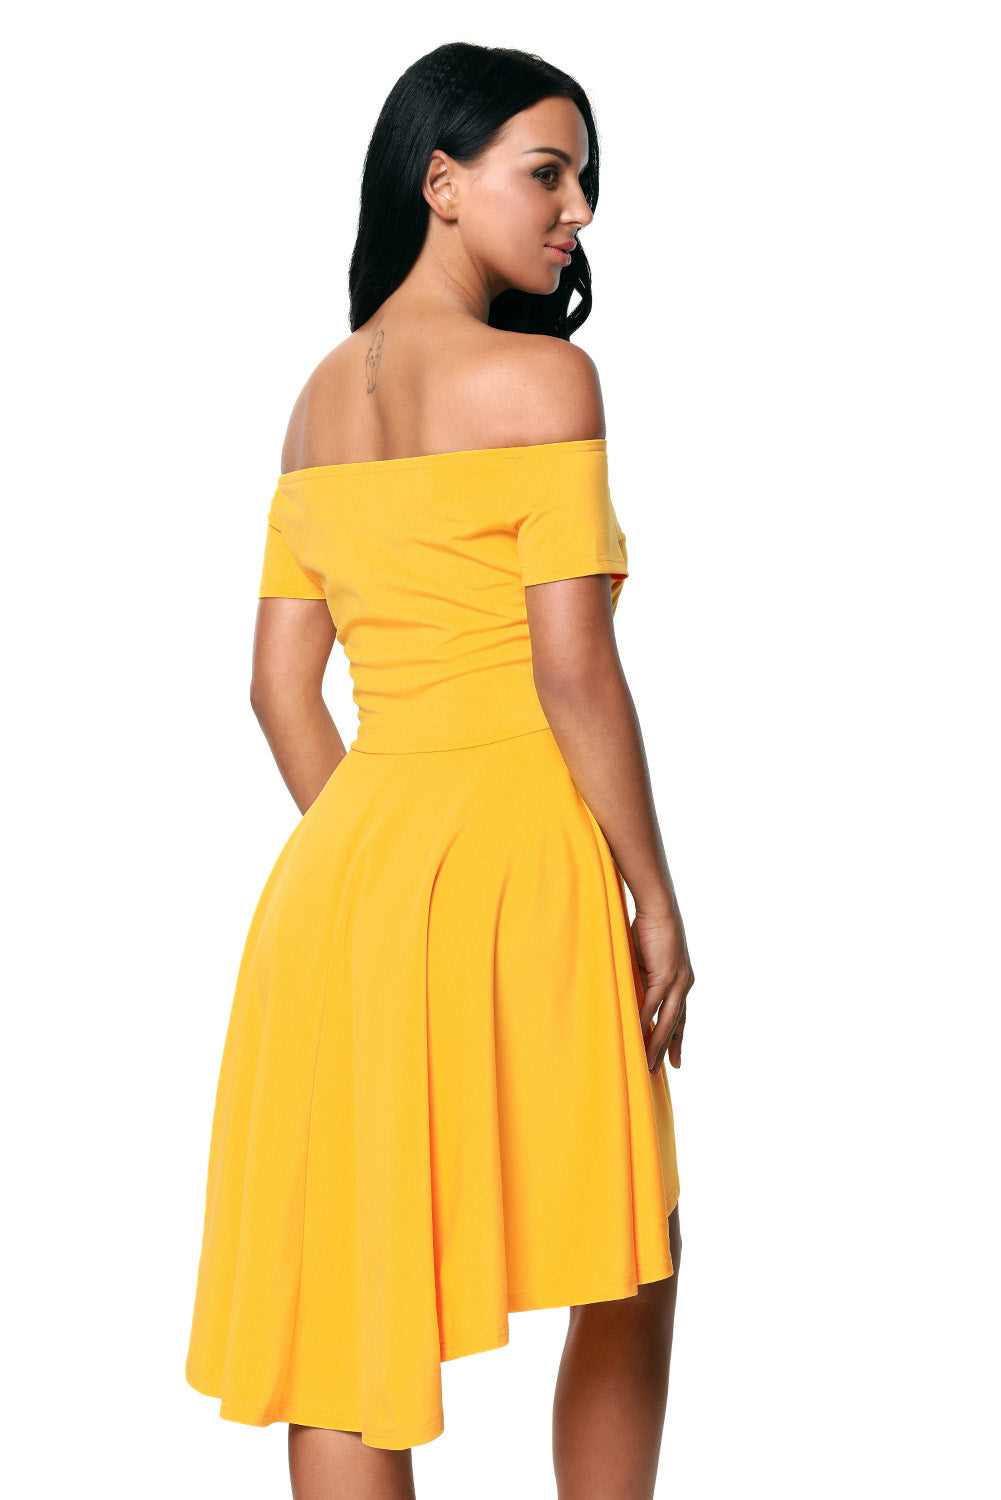 Yellow All The Rage Skater Dress Skater Dresses Discount Designer Fashion Clothes Shoes Bags Women Men Kids Children Black Owned Business